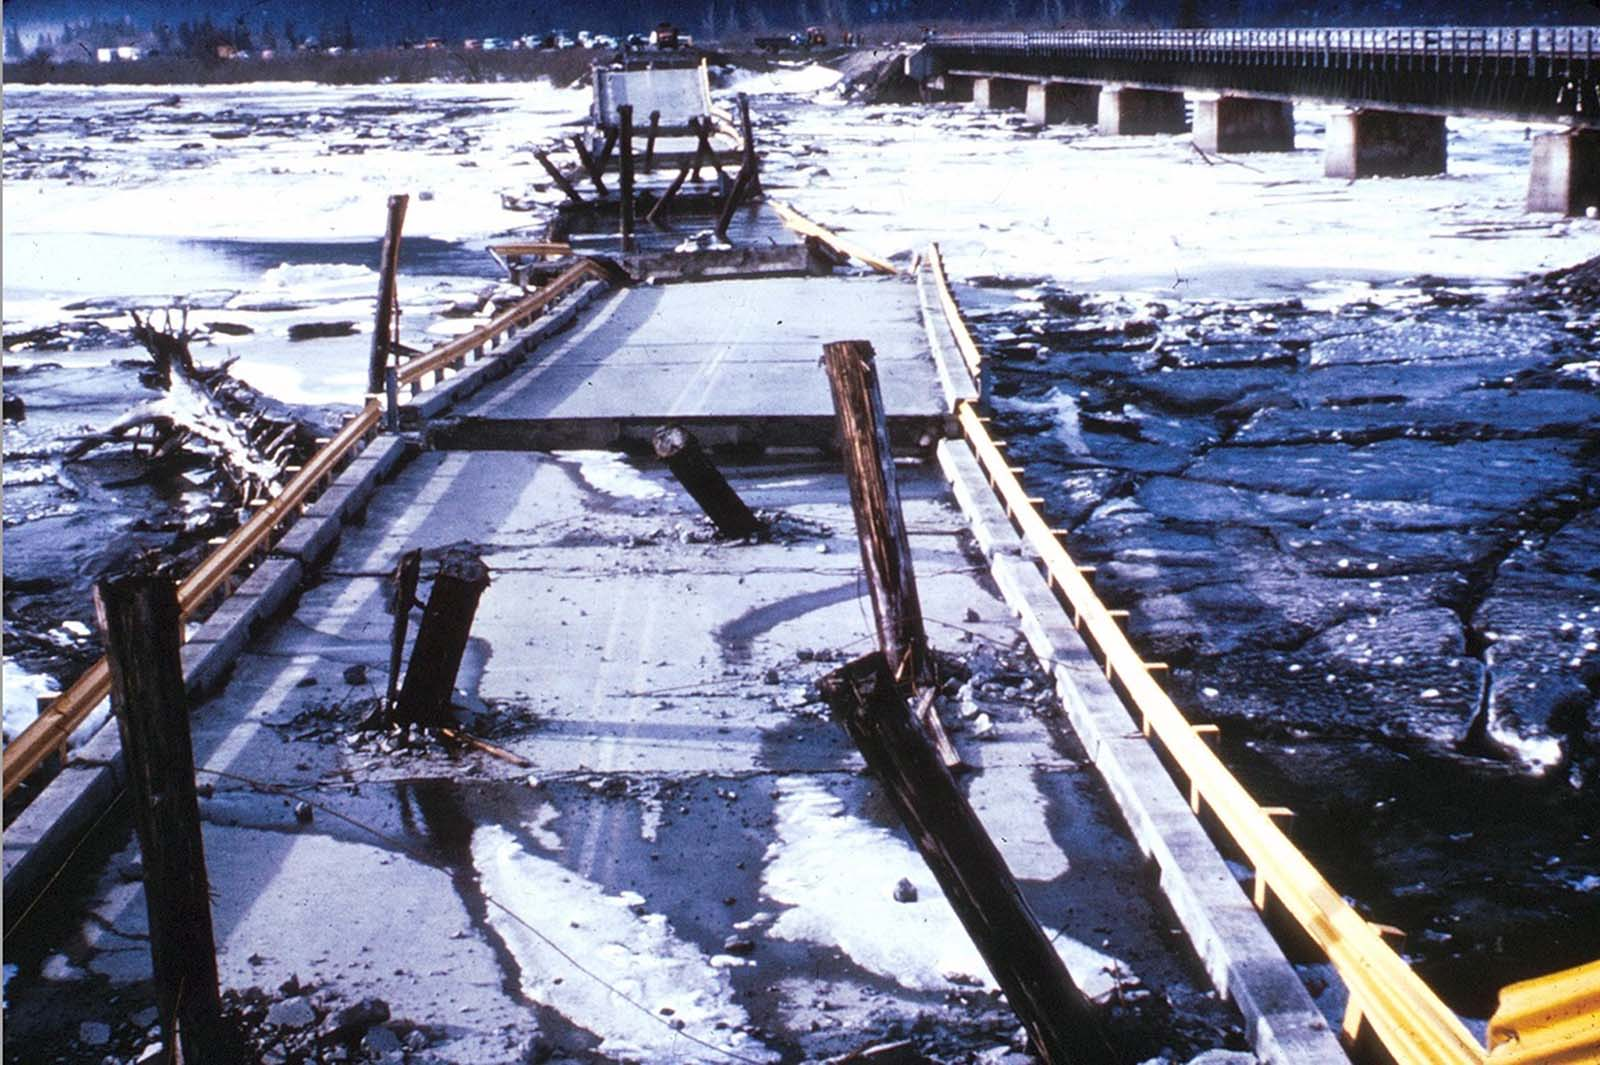 Support columns punched through the deck of the Twentymile River Bridge, as it collapsed during the earthquake, near Turnagain Arm on Cook Inlet. The adjacent steel railroad bridge survived with only minor damage.